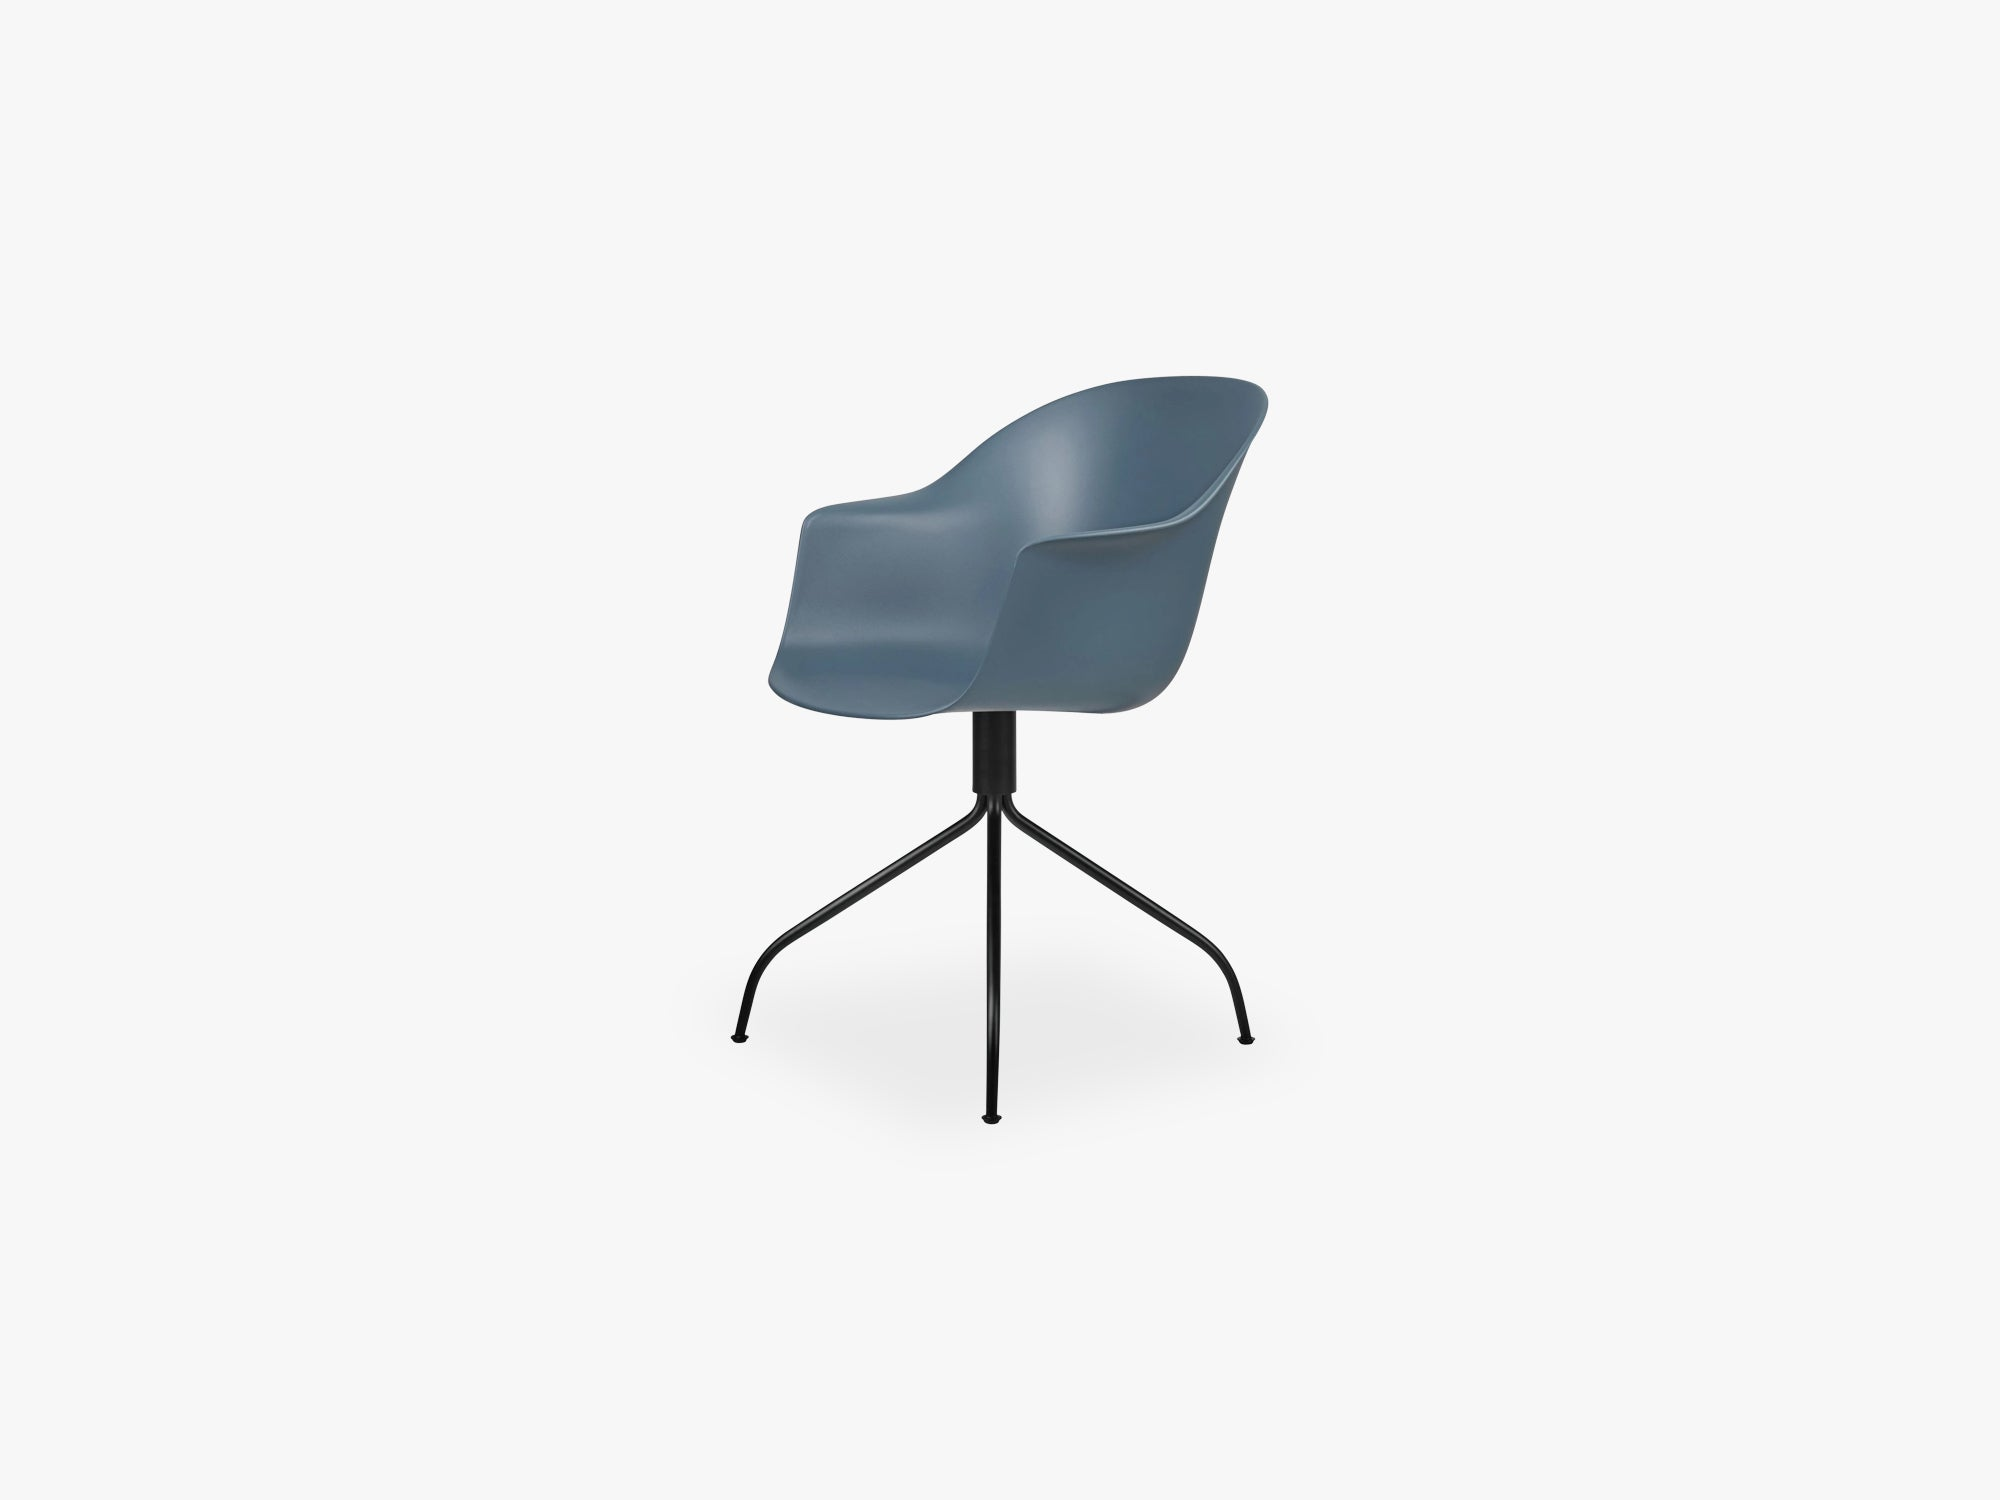 Bat Meeting Chair - Skal m Swivel base - Black Matt, Smoke Blue fra GUBI